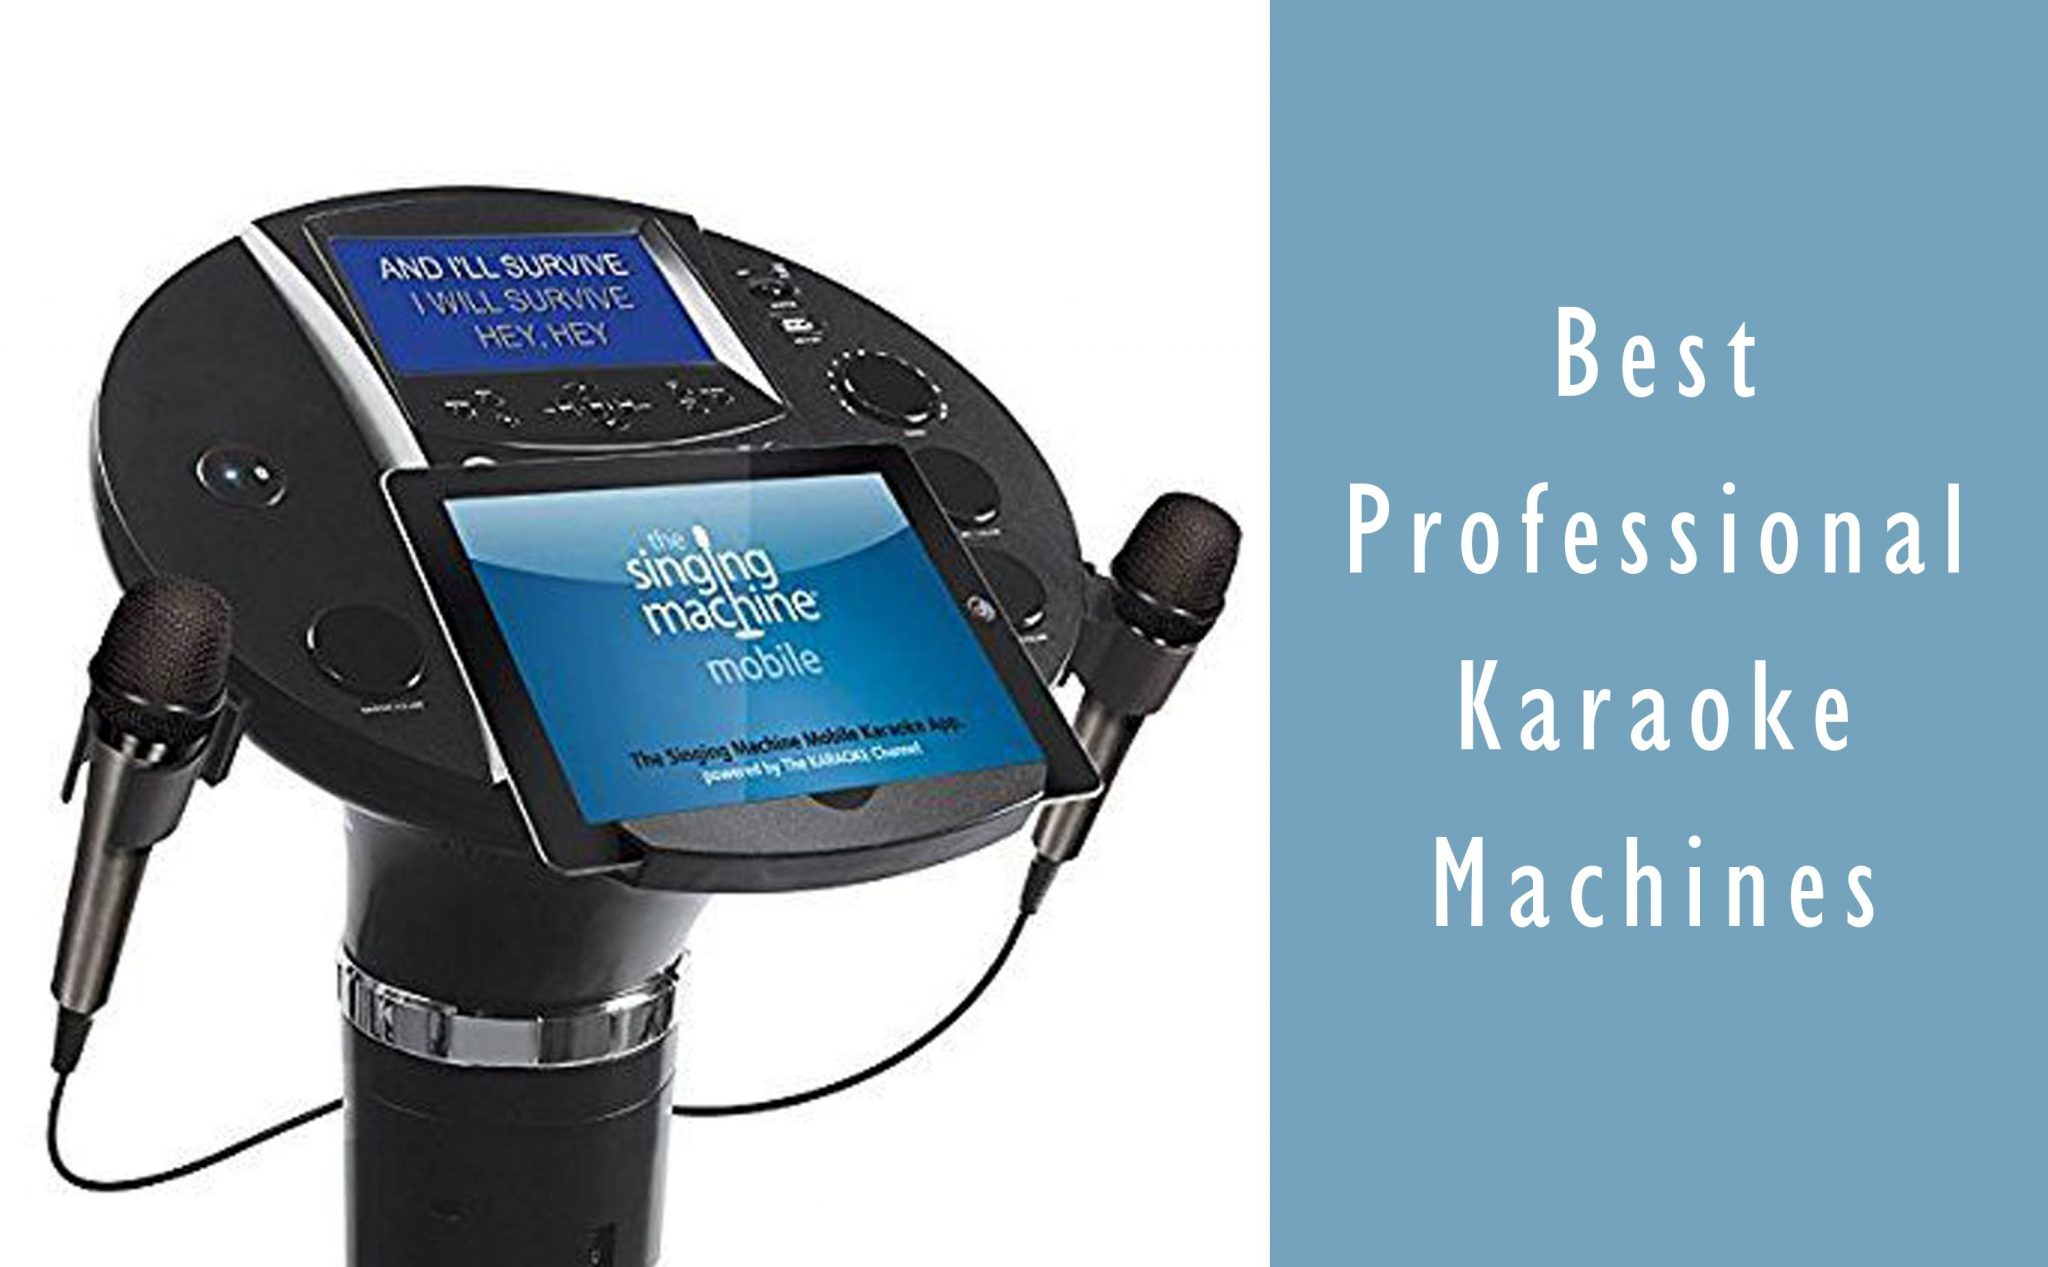 5 Best Professional Karaoke Machines 2019 (Buyer's Guide ...